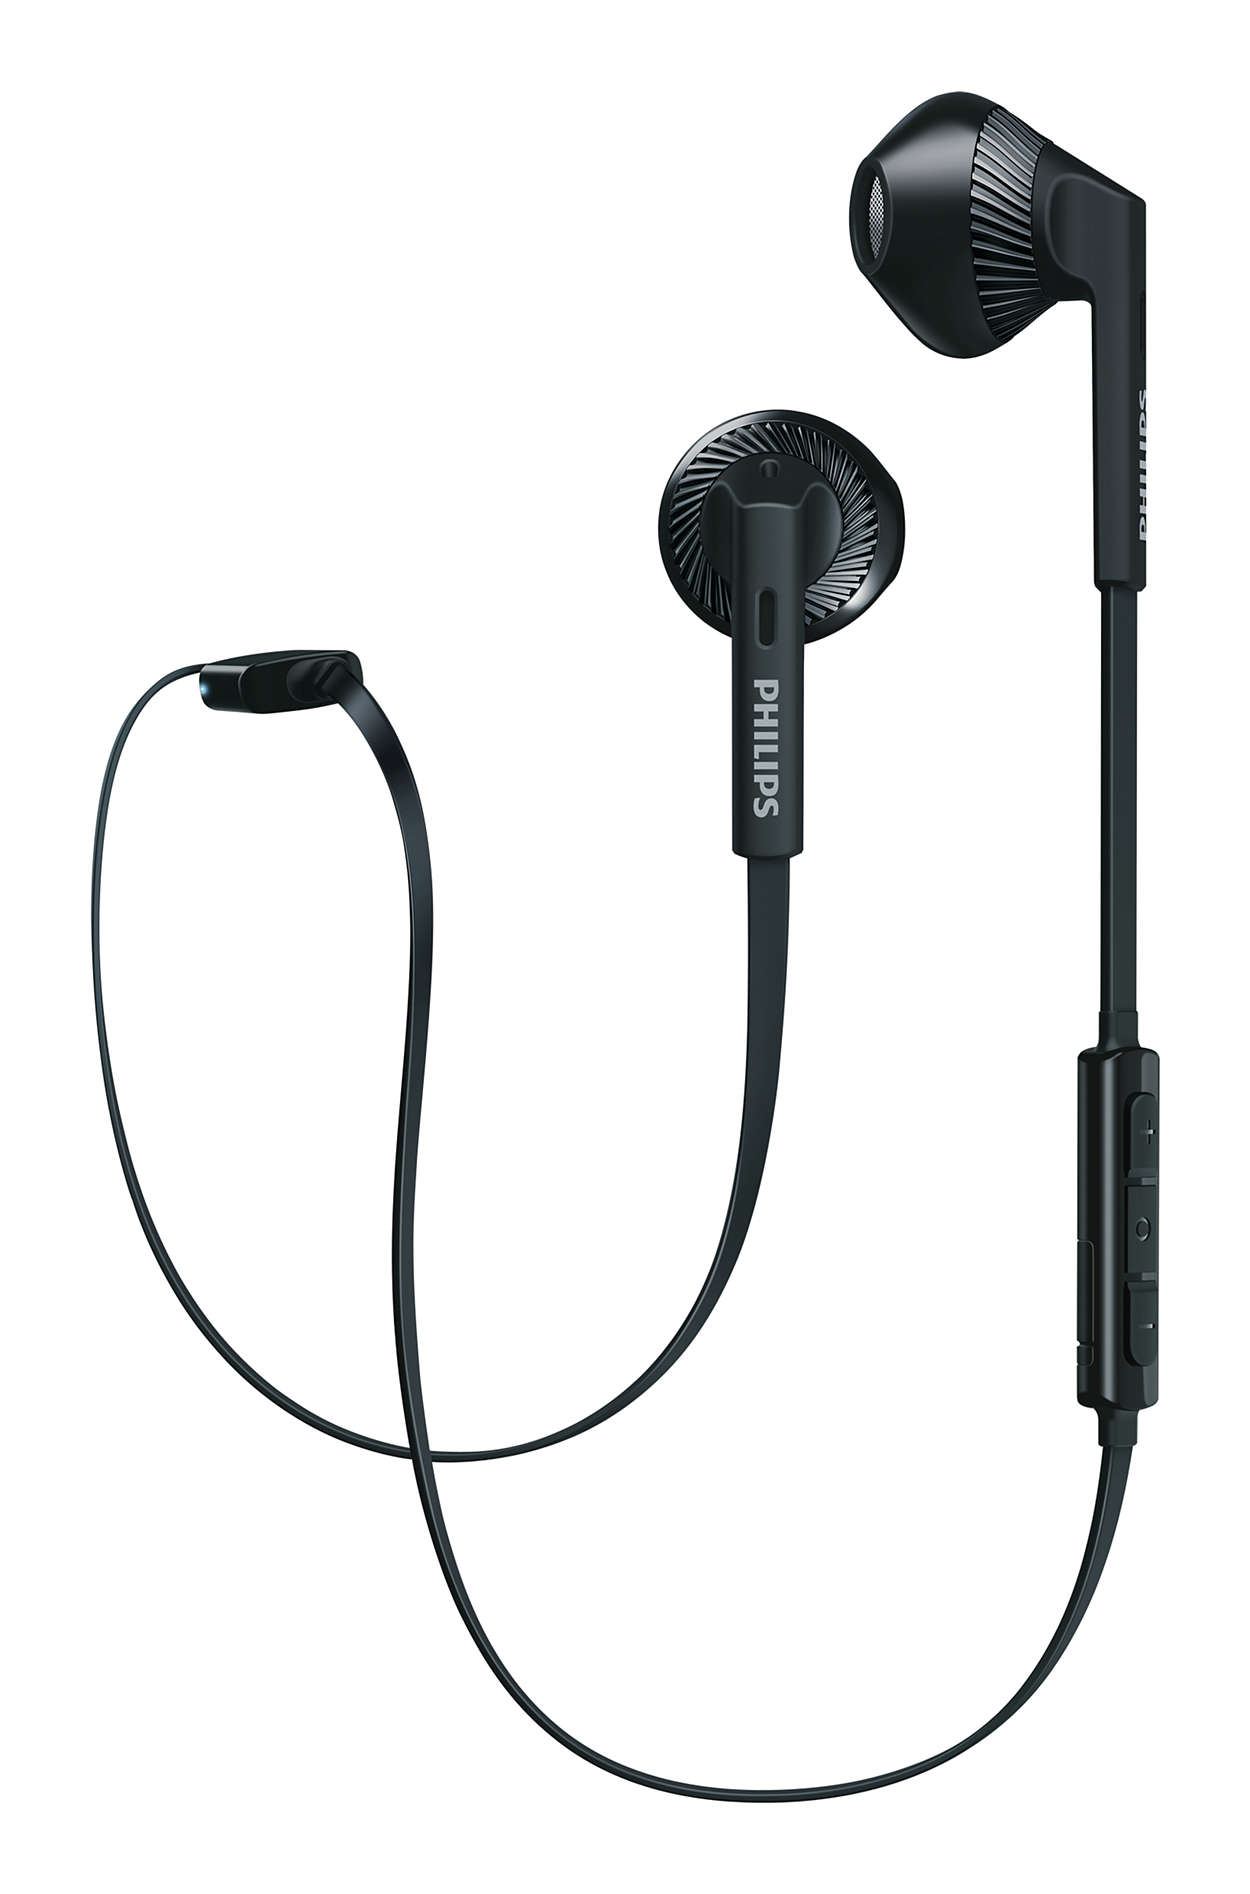 7b1c8a8ae58 Bluetooth Headset SHB5250BK/27 | Philips